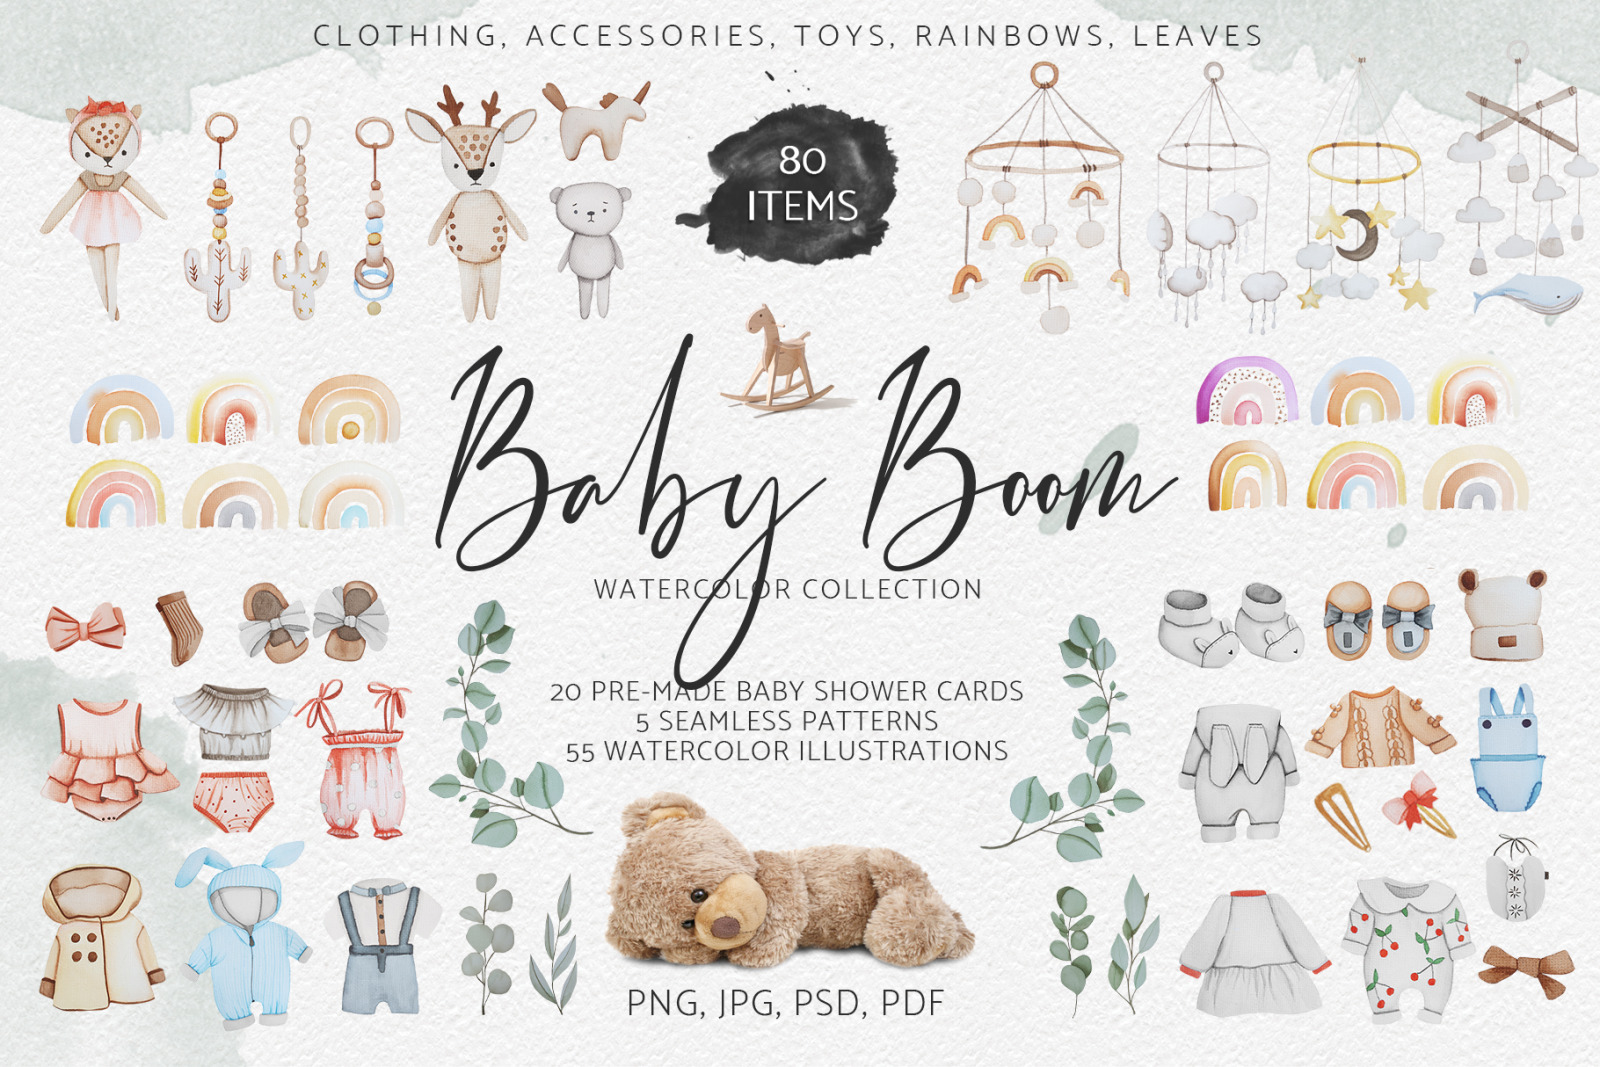 Baby Boom watercolor collection